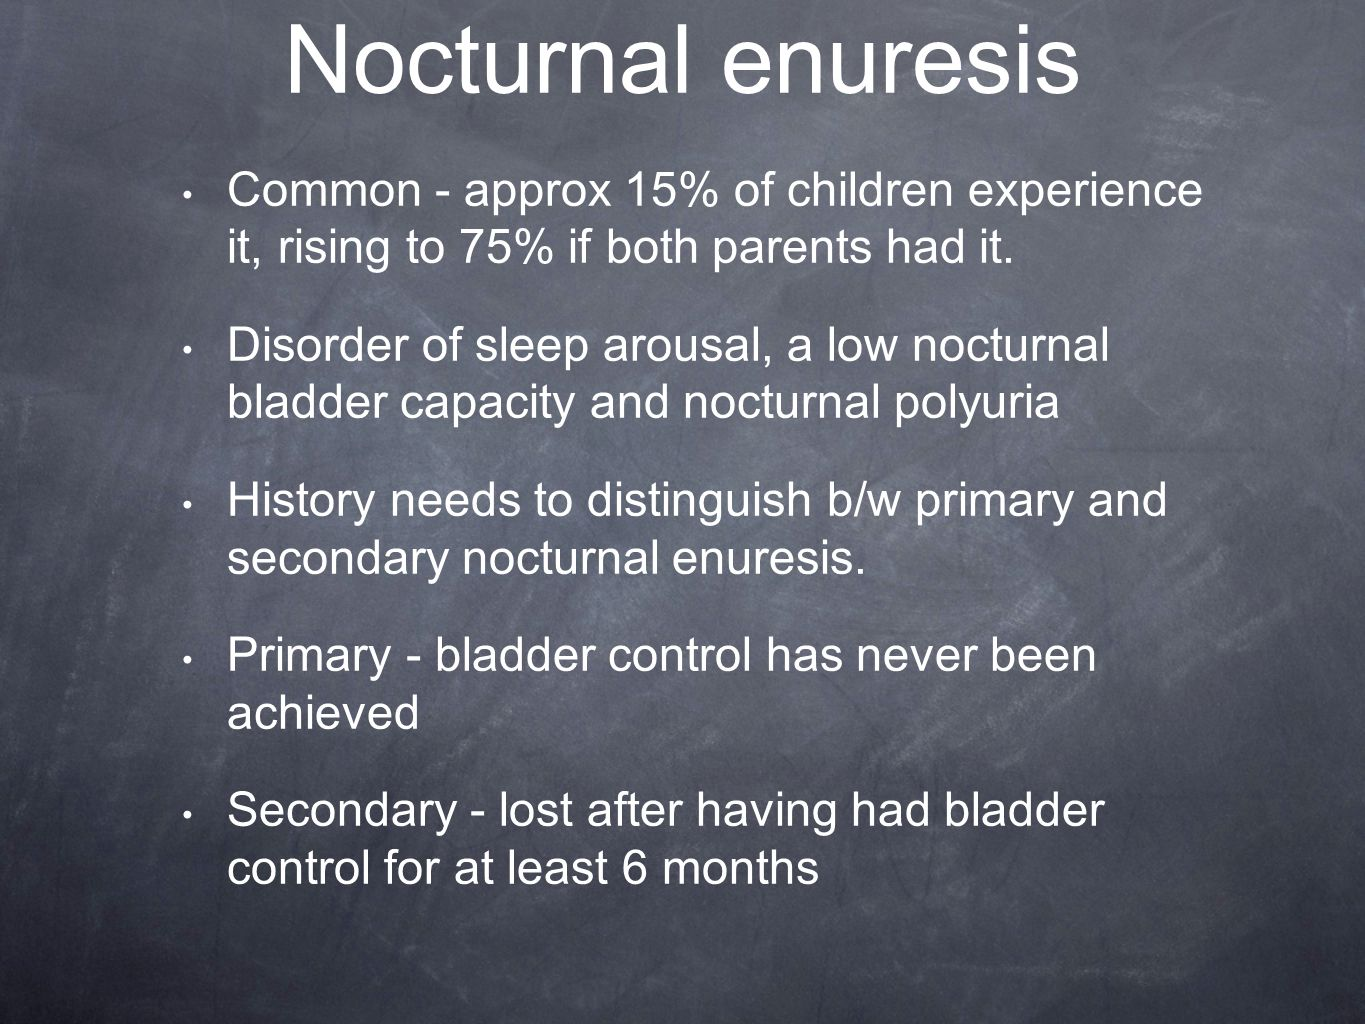 Nocturnal enuresis Common - approx 15% of children experience it, rising to 75% if both parents had it.